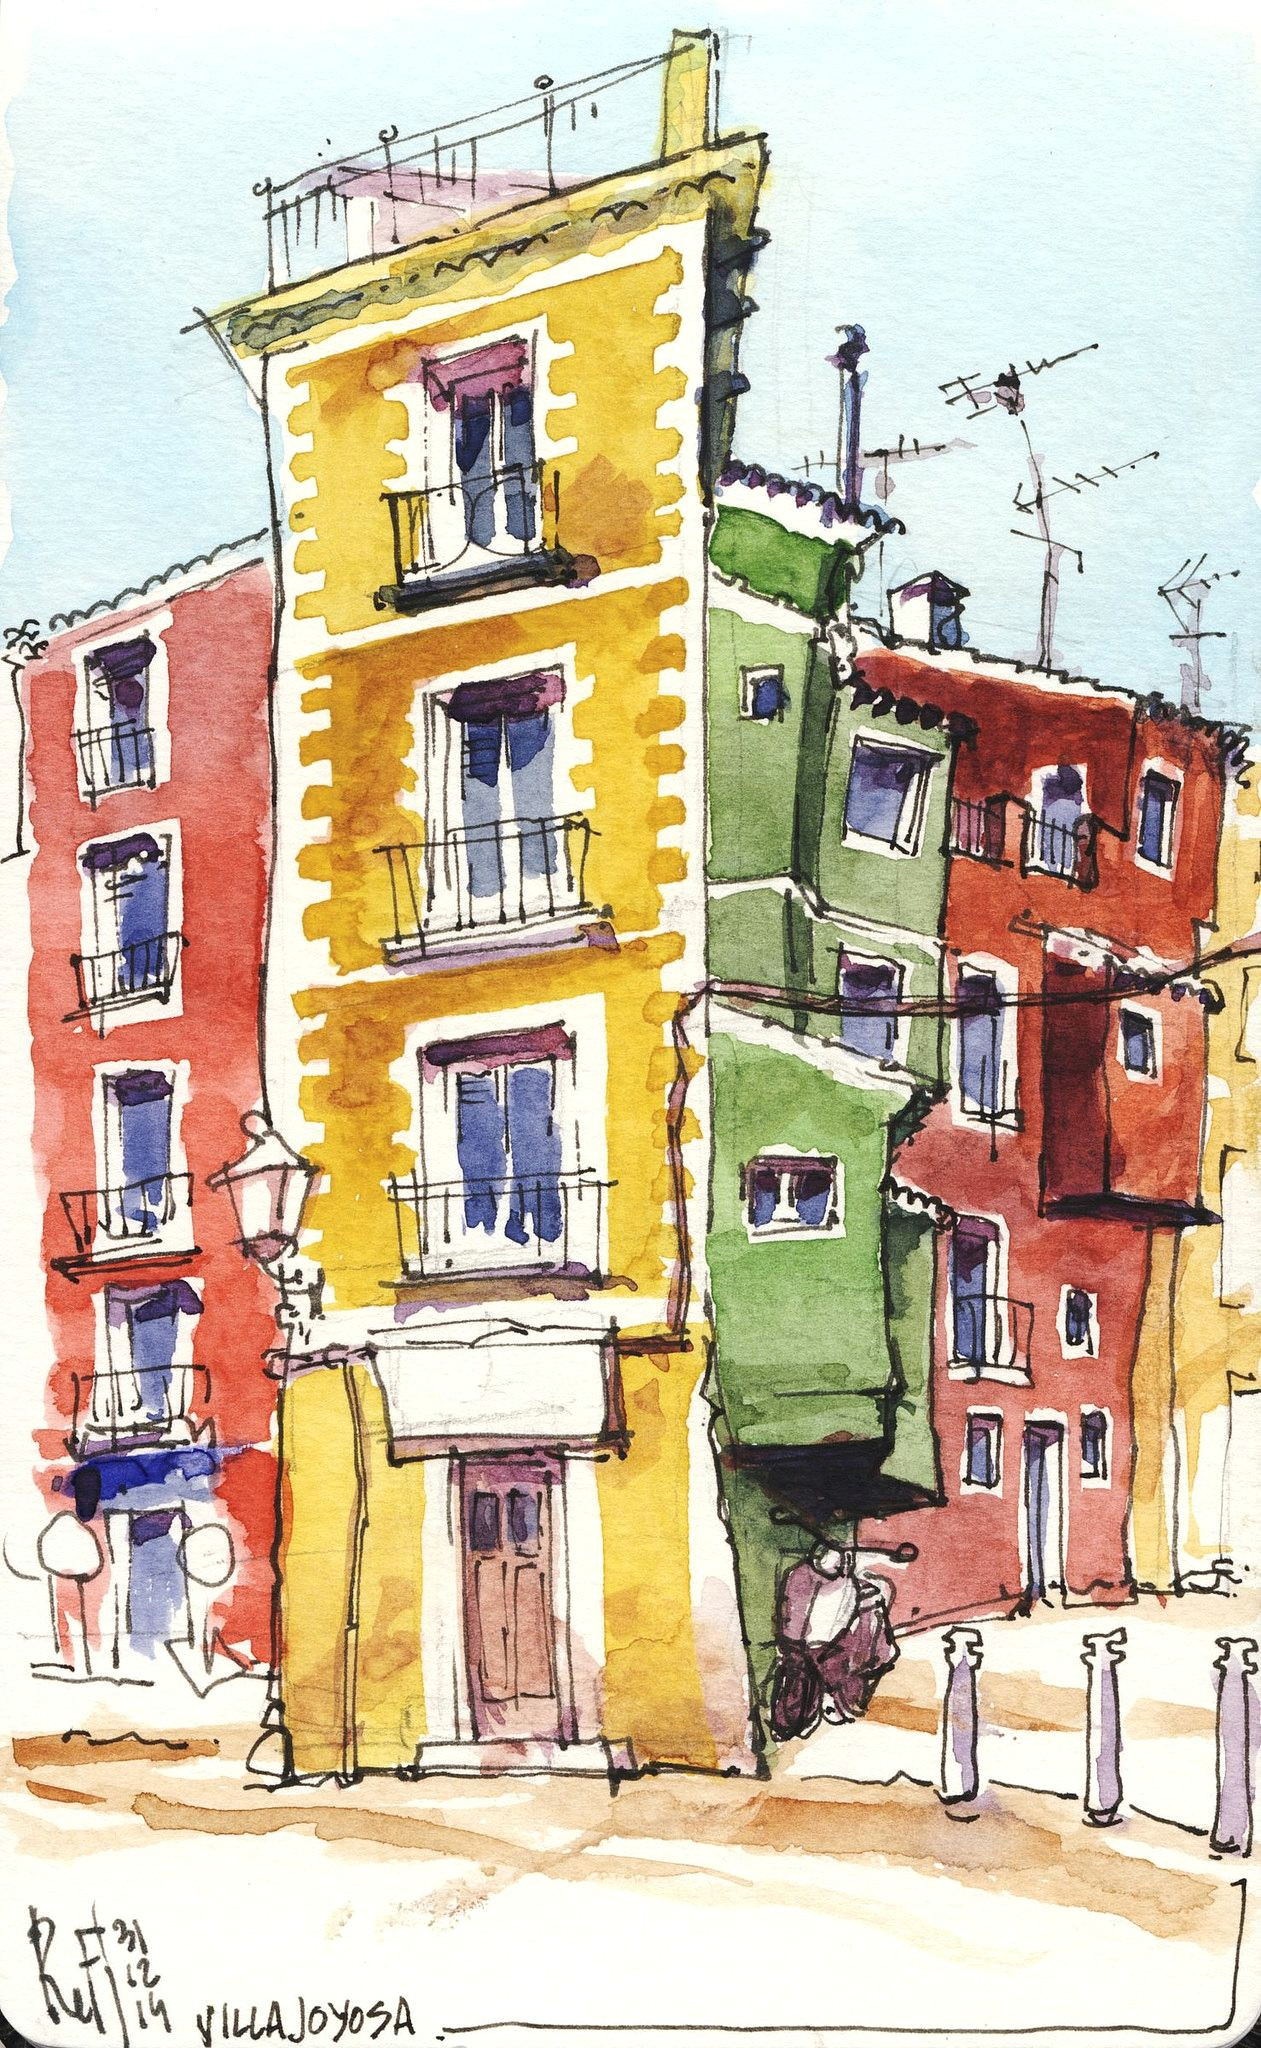 villajoyosa 02 por renefijten watercolor paintings watercolor sketch watercolor illustration watercolours